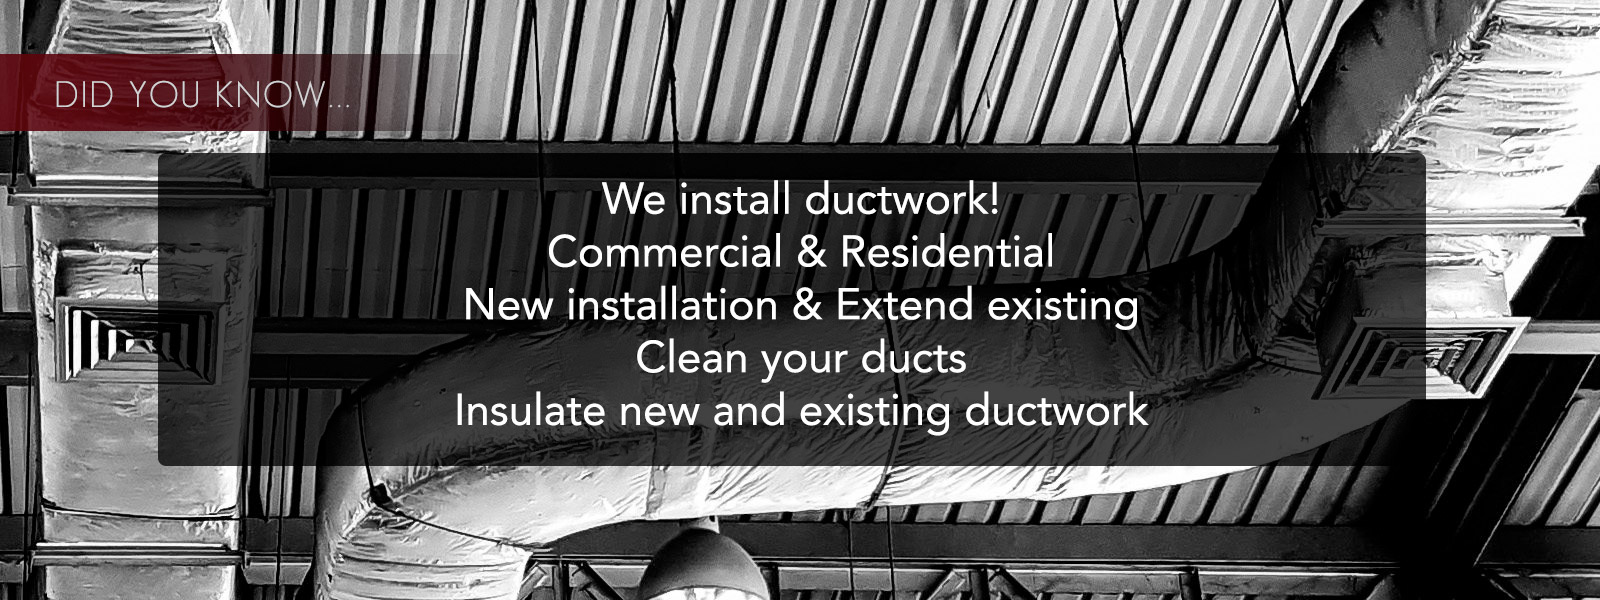 ductwork cleaning and instalation